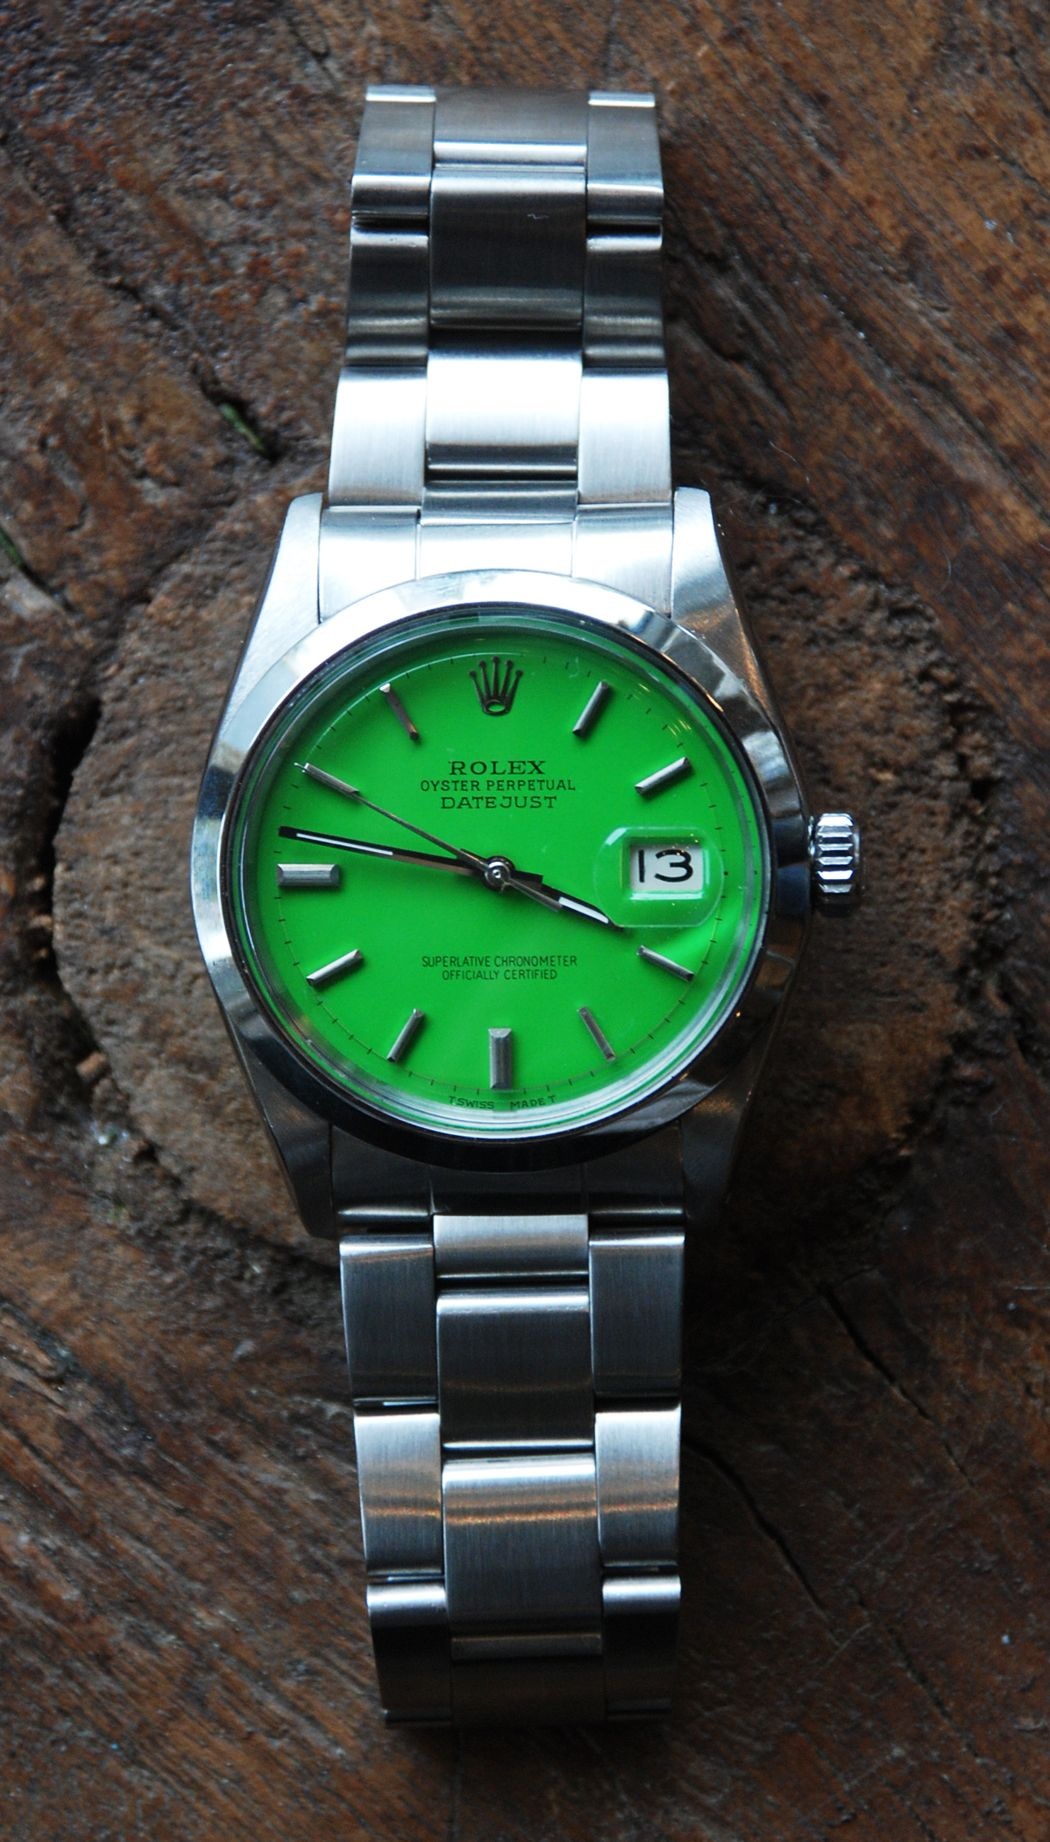 a0e5bd86046a3 Green dial vintage Rolex   watches   Pinterest   Relógios, Watches e ...